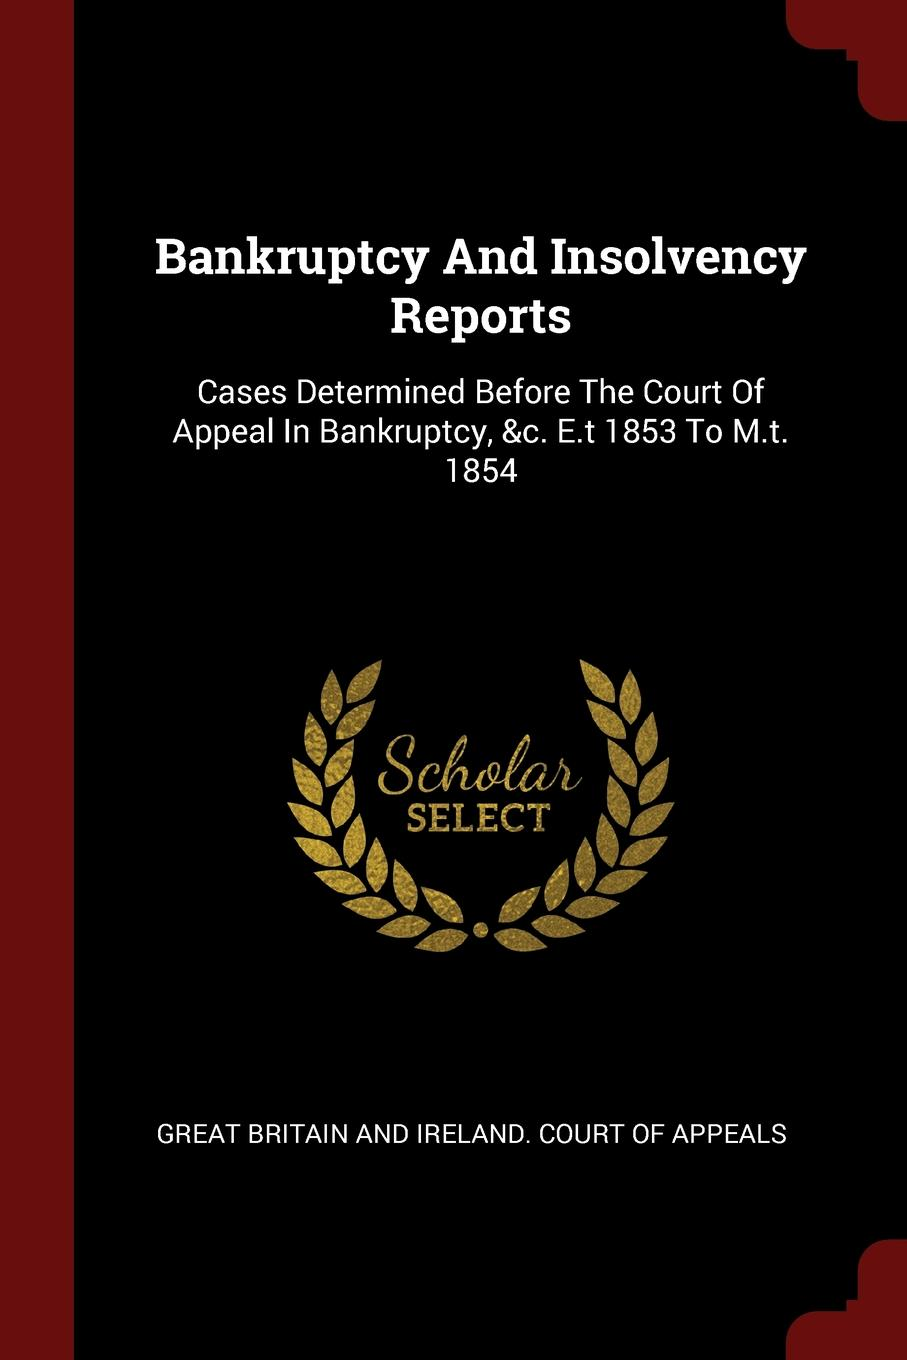 Bankruptcy And Insolvency Reports. Cases Determined Before The Court Of Appeal In Bankruptcy, .c. E.t 1853 To M.t. 1854